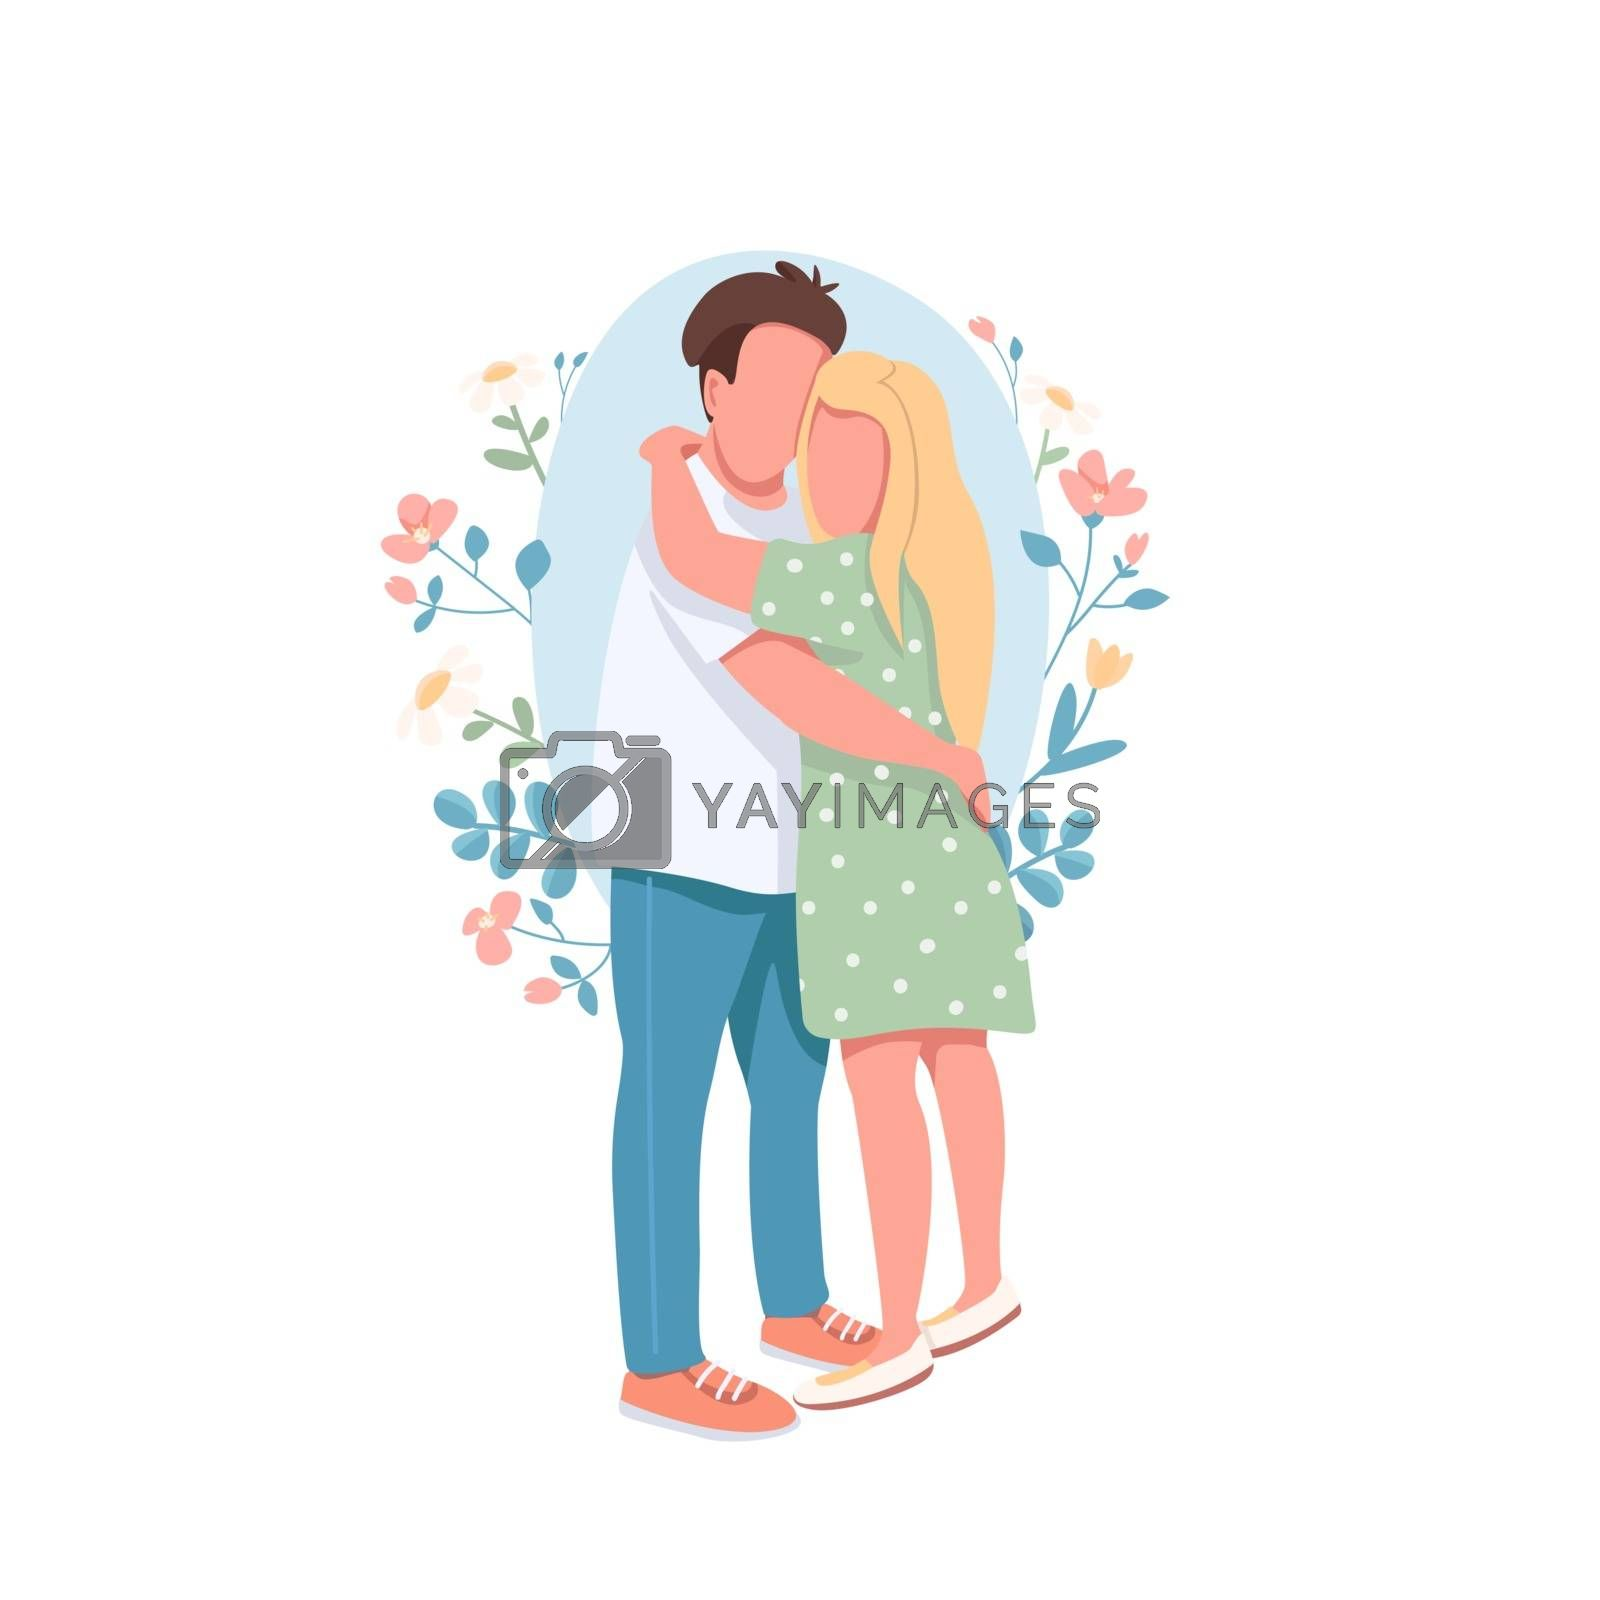 Happy couple flat concept vector illustration. Romantic relationship. Boyfriend embrace girlfriend. Family 2D cartoon characters for web design. Heterosexual couple cuddling creative idea